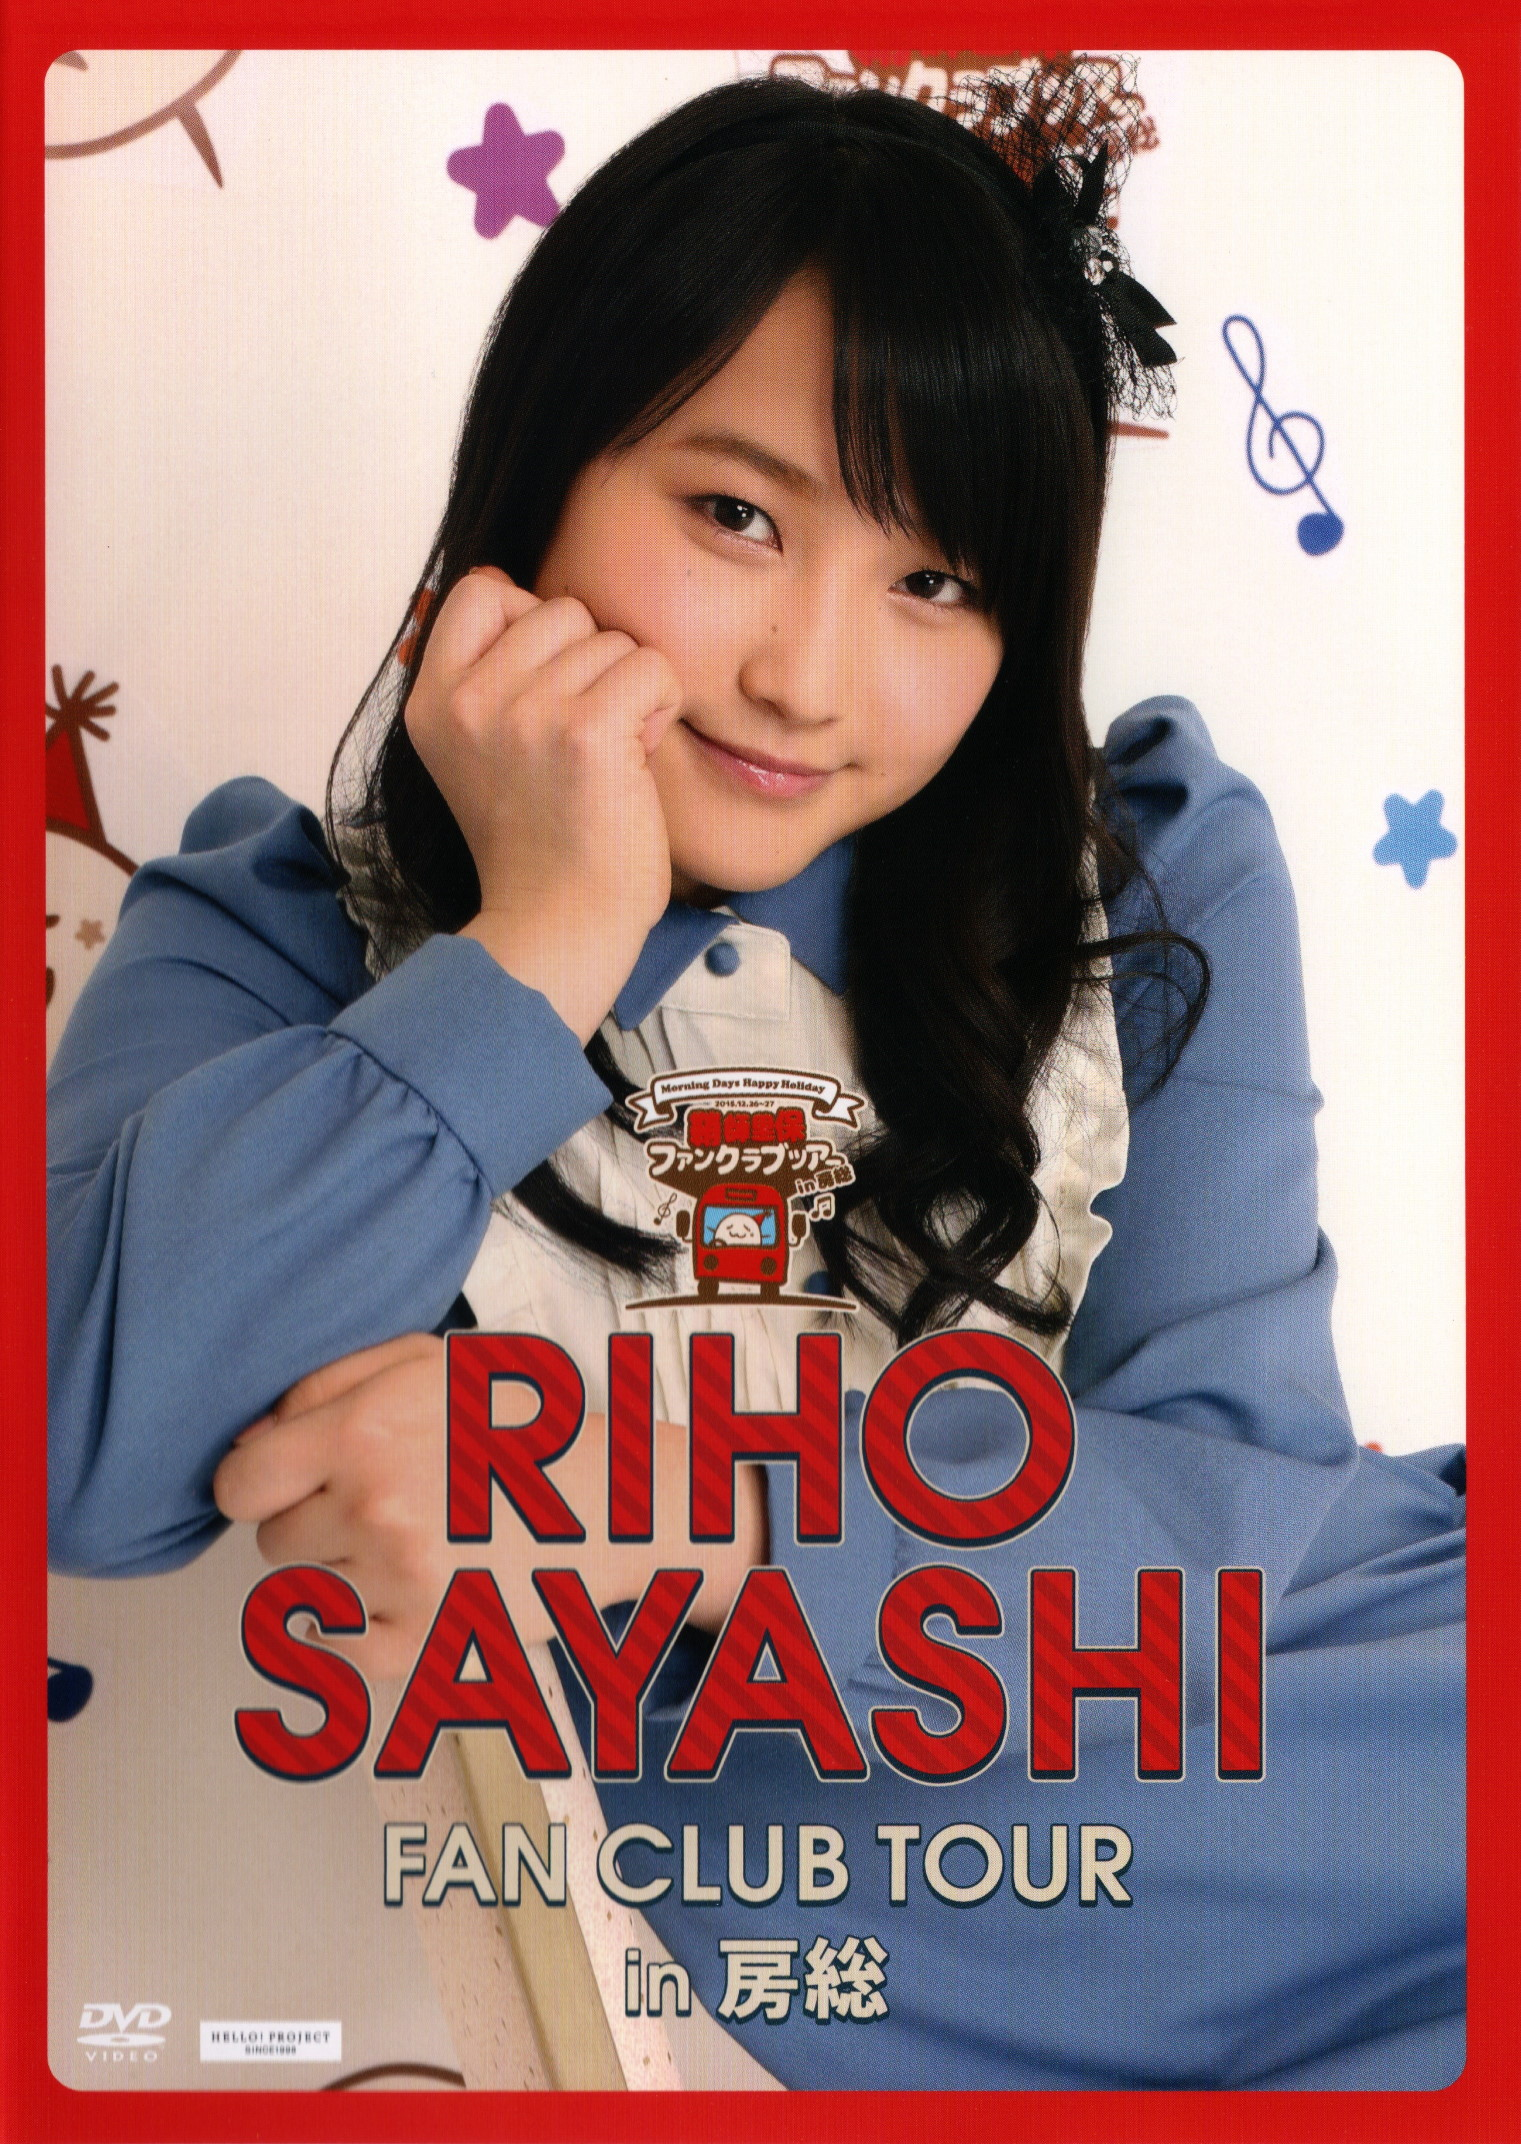 Morning Days Happy Holiday Sayashi Riho Fanclub Tour in Boso